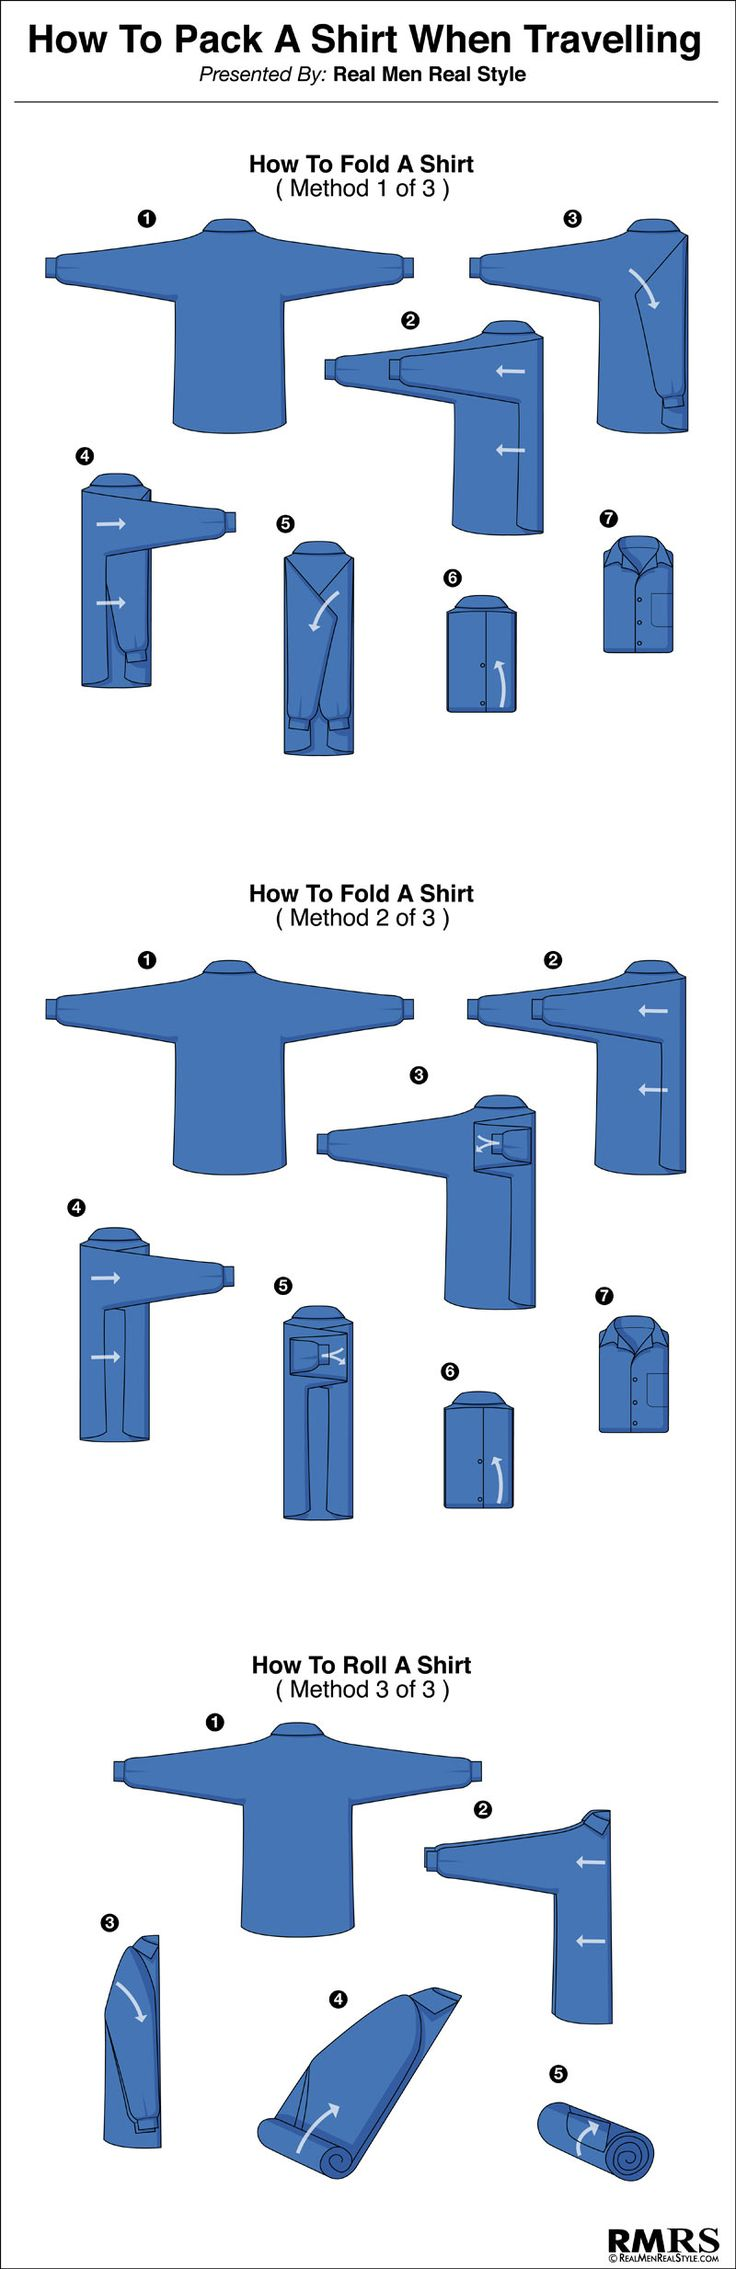 How To Fold A Men's Dress Shirt – Travel Tips For Folding Shirts (via @antoniocenteno)